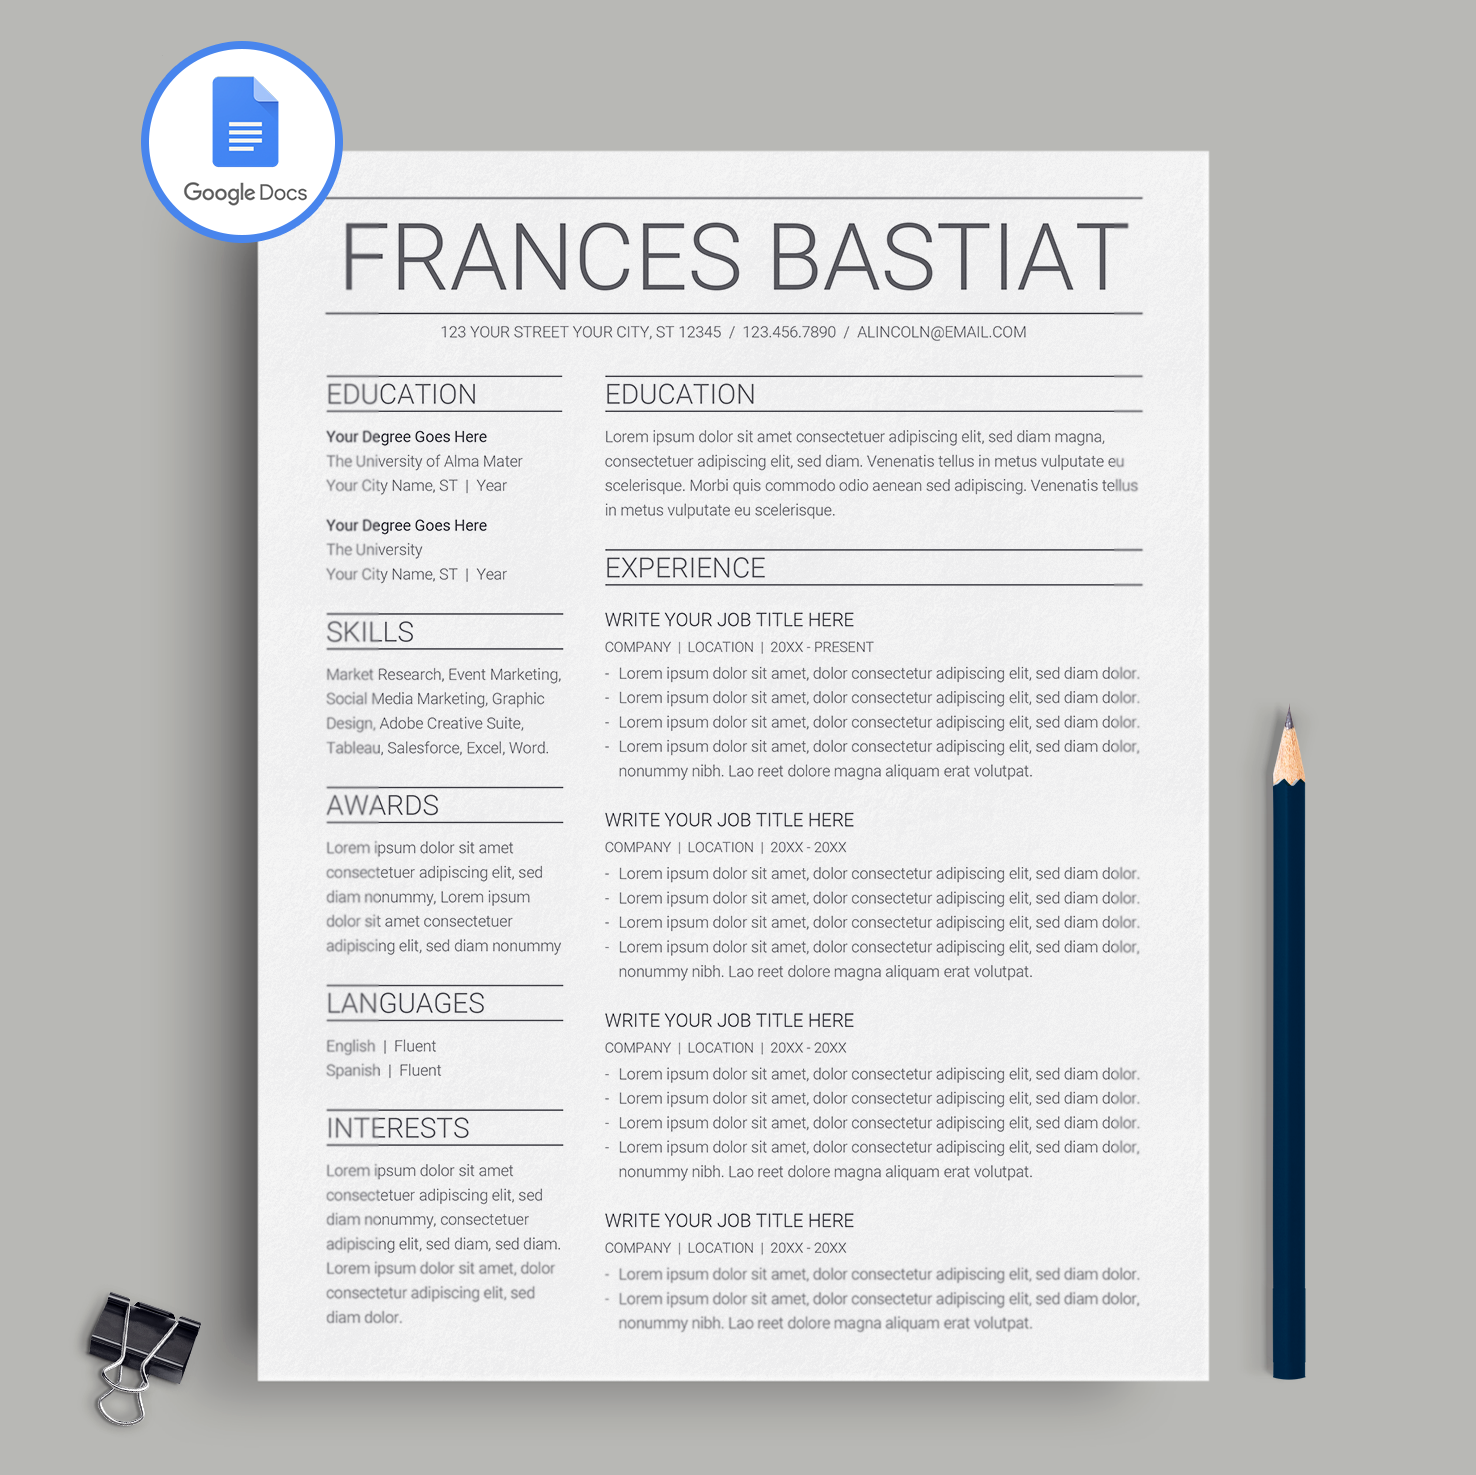 Google Docs Resume Template CV Template Frances Bastiat MioDocs - Google documents resume